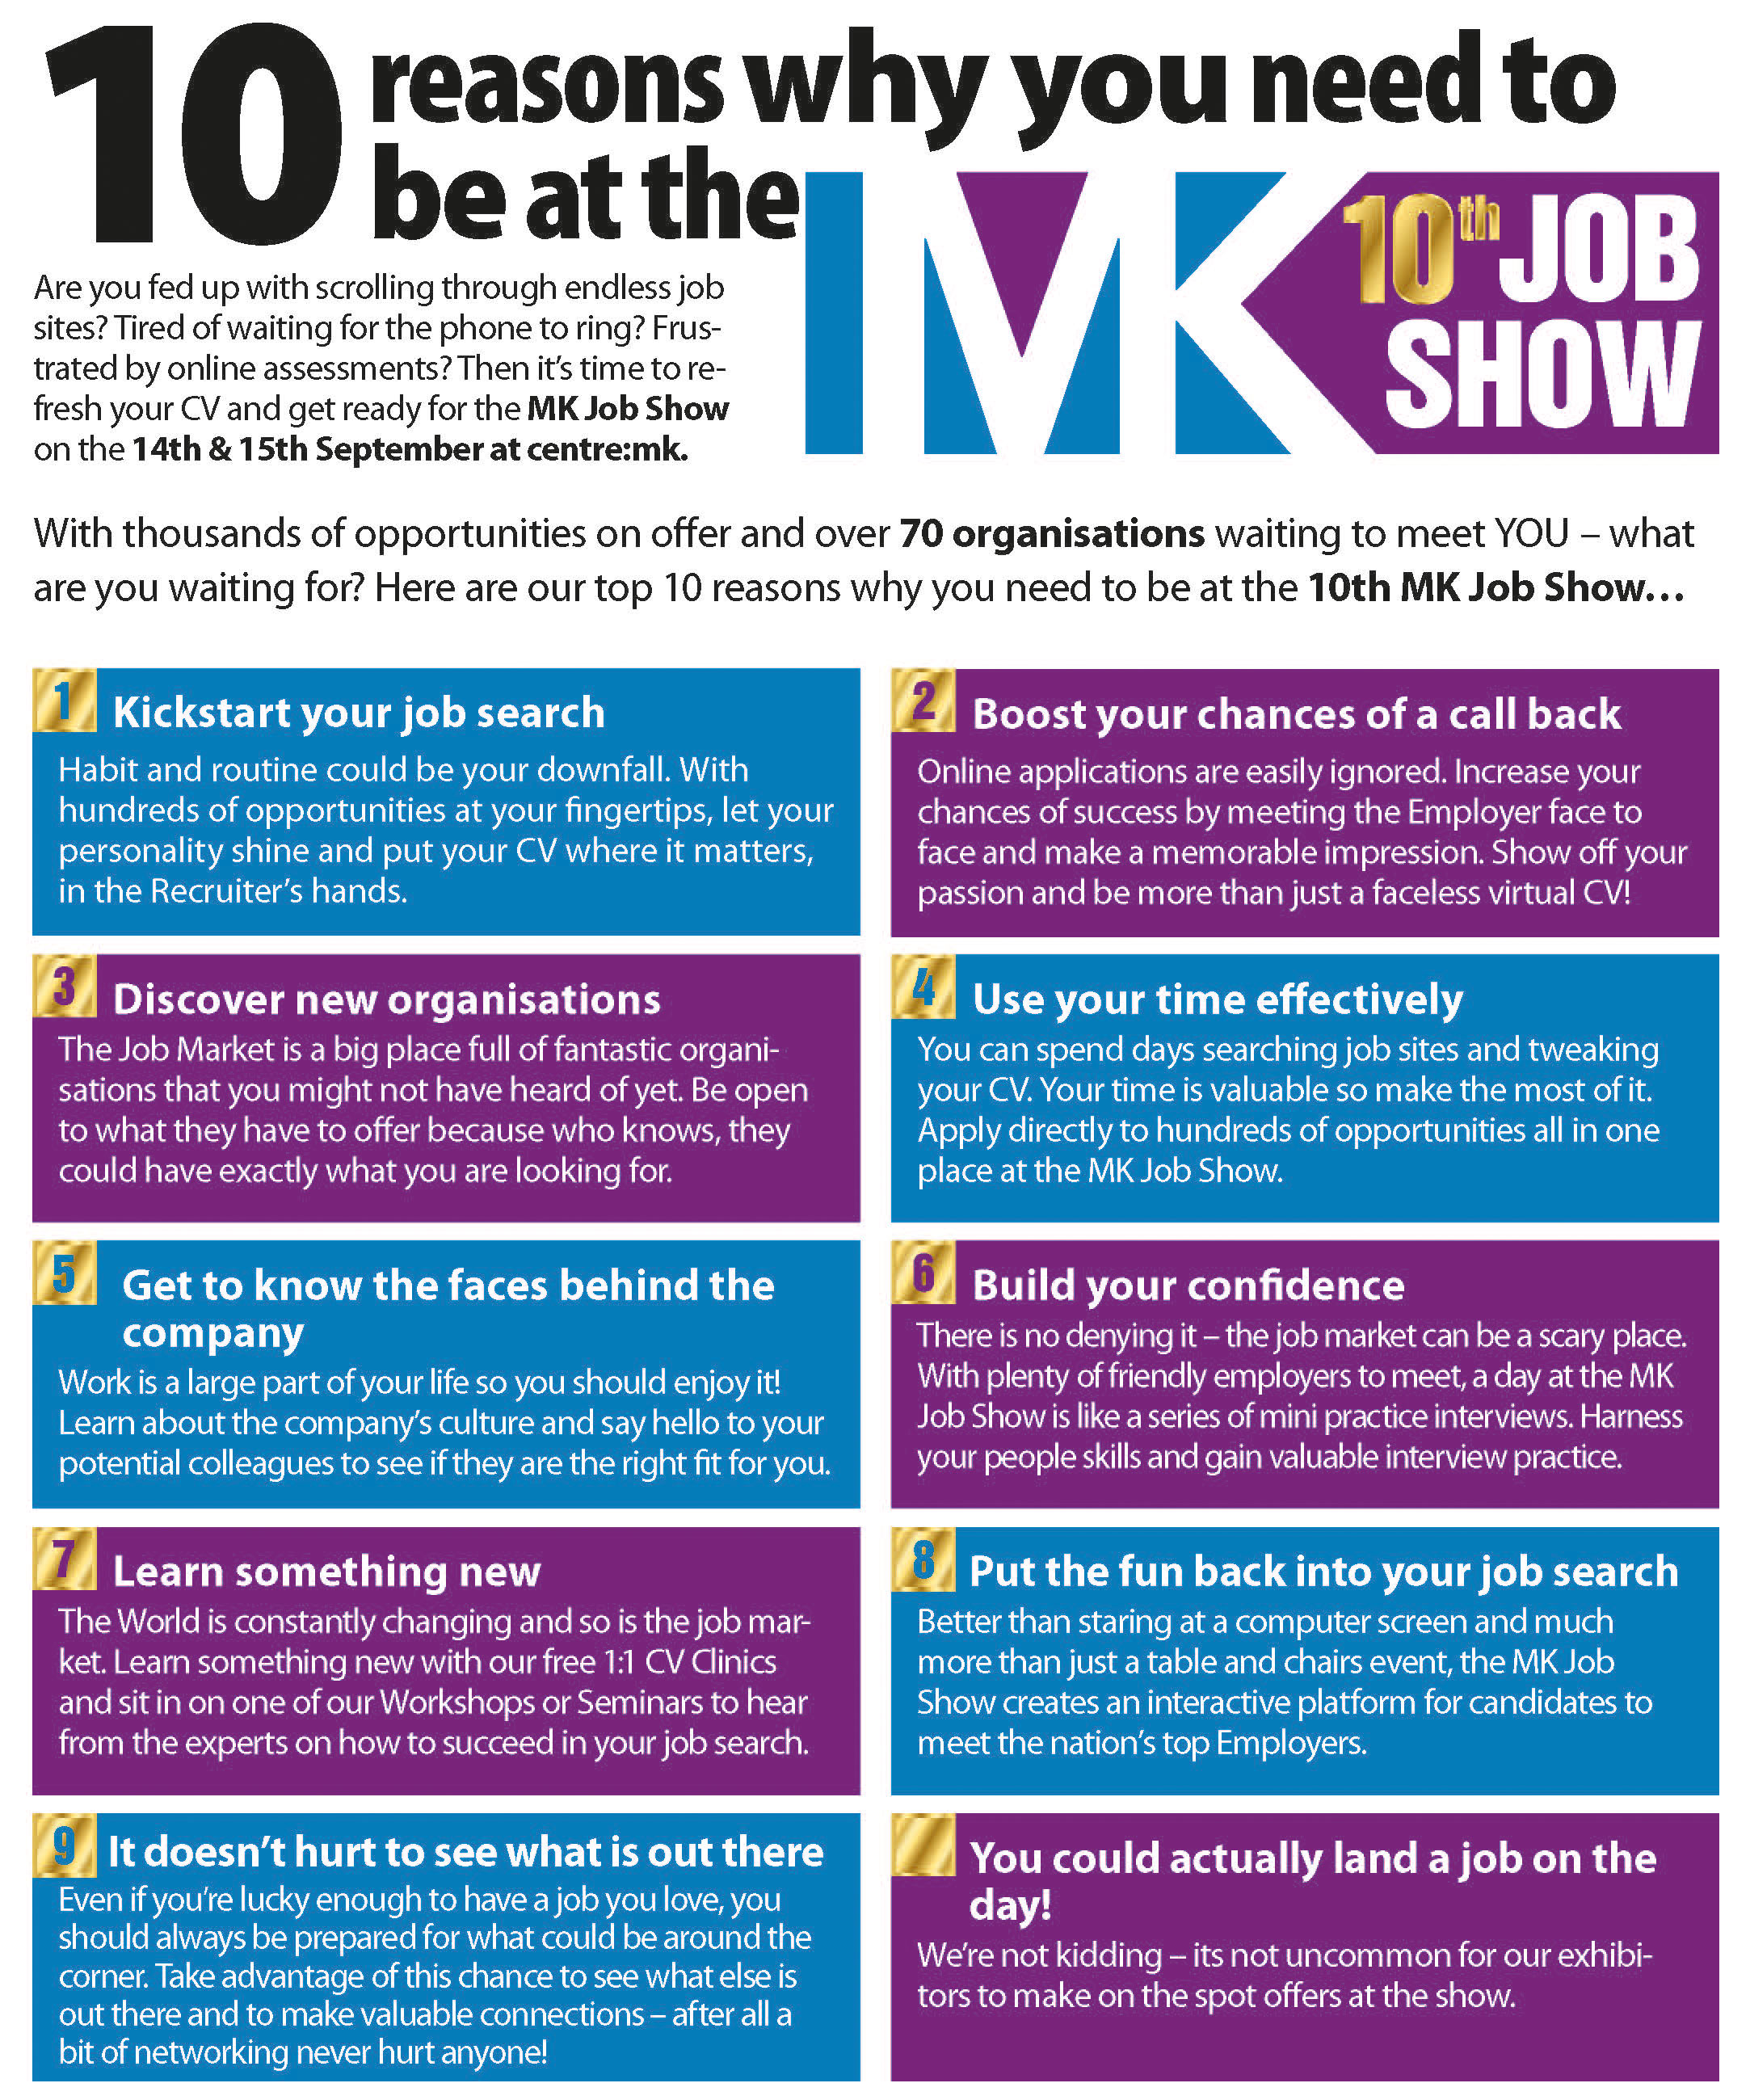 Why Attend - MK Job Show